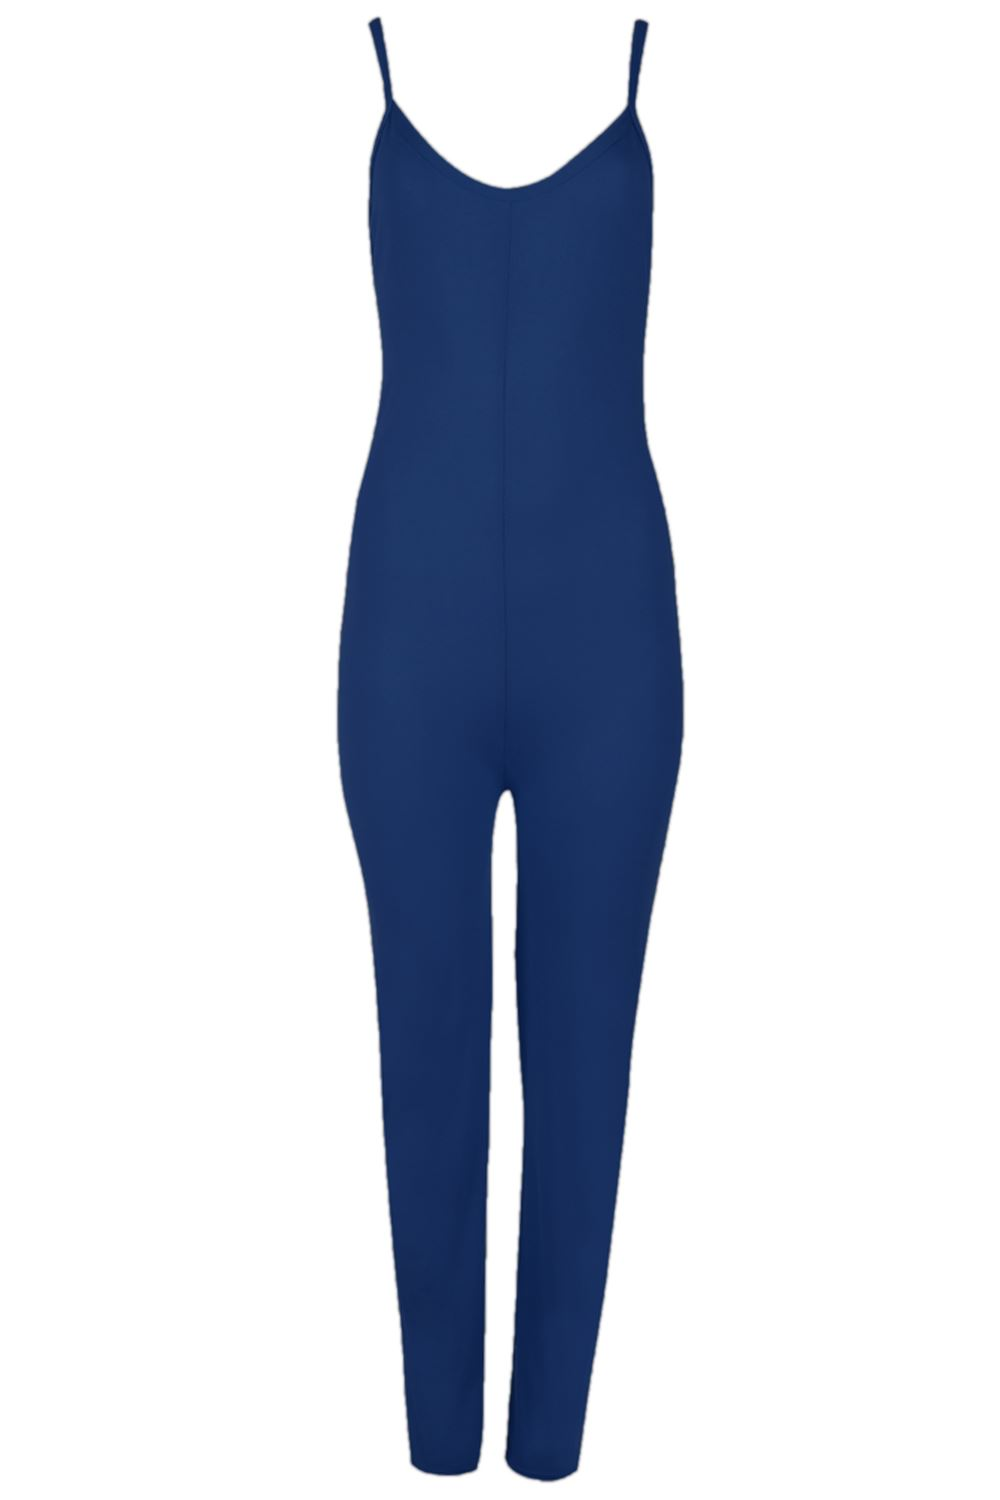 Ladies-Thin-Strap-Cami-Playsuit-Womens-Plain-Jersey-All-in-One-Jumpsuit-UK-8-14